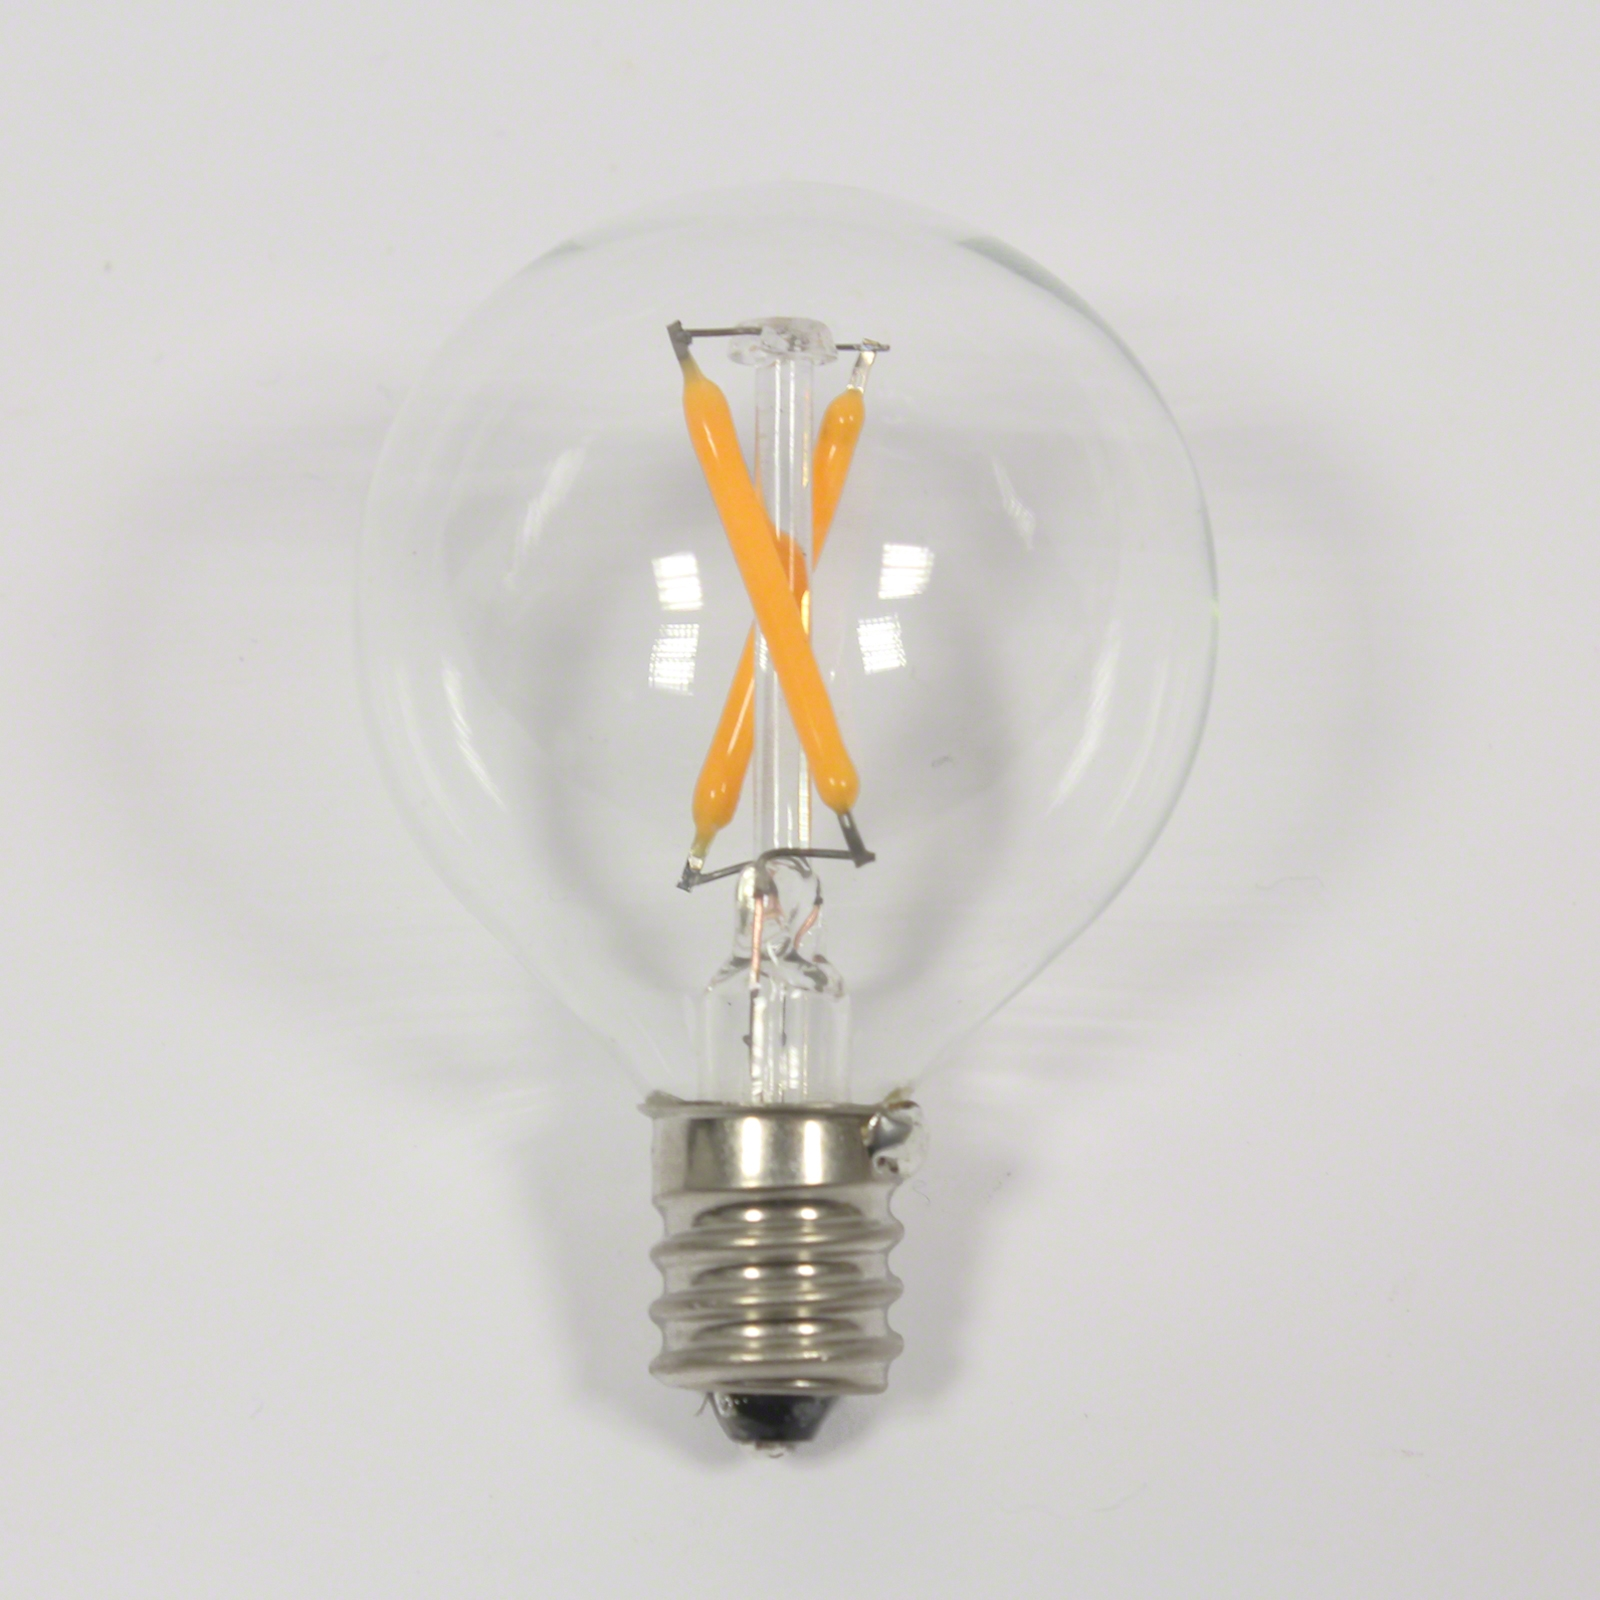 Mouse Lamp Replacement Bulb